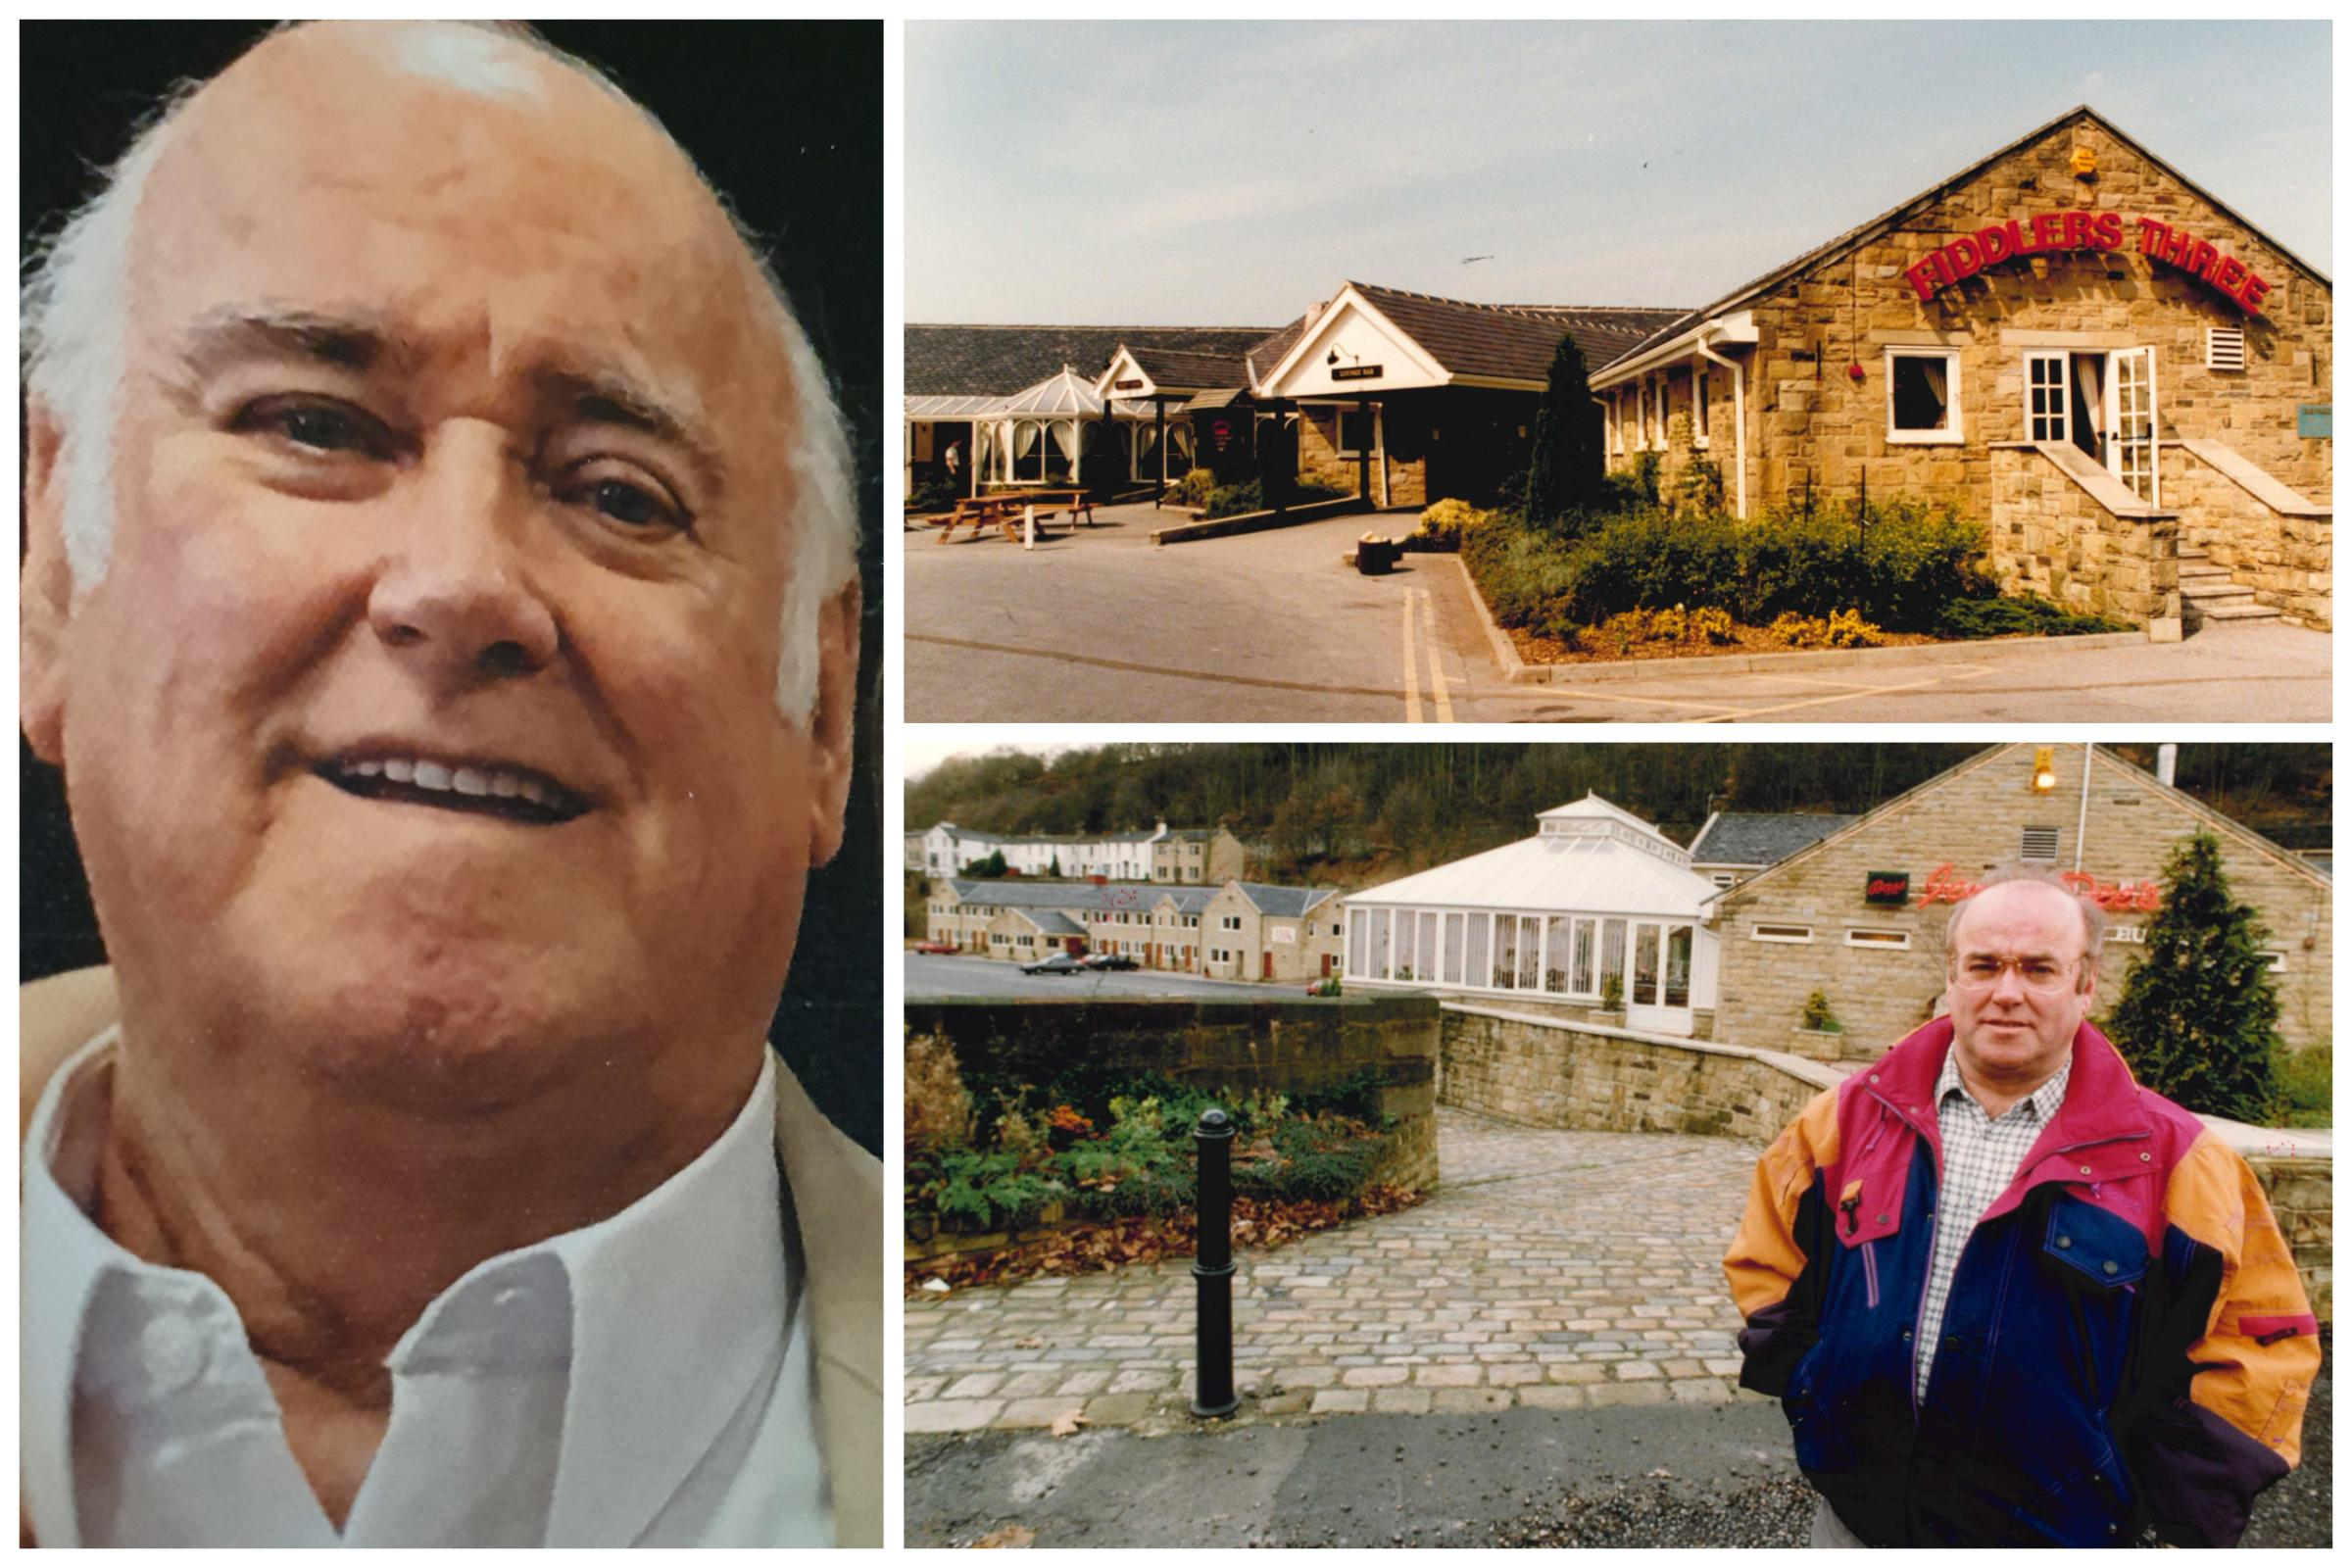 Tributes paid to Bradford pub tycoon Chris Delaney after his death